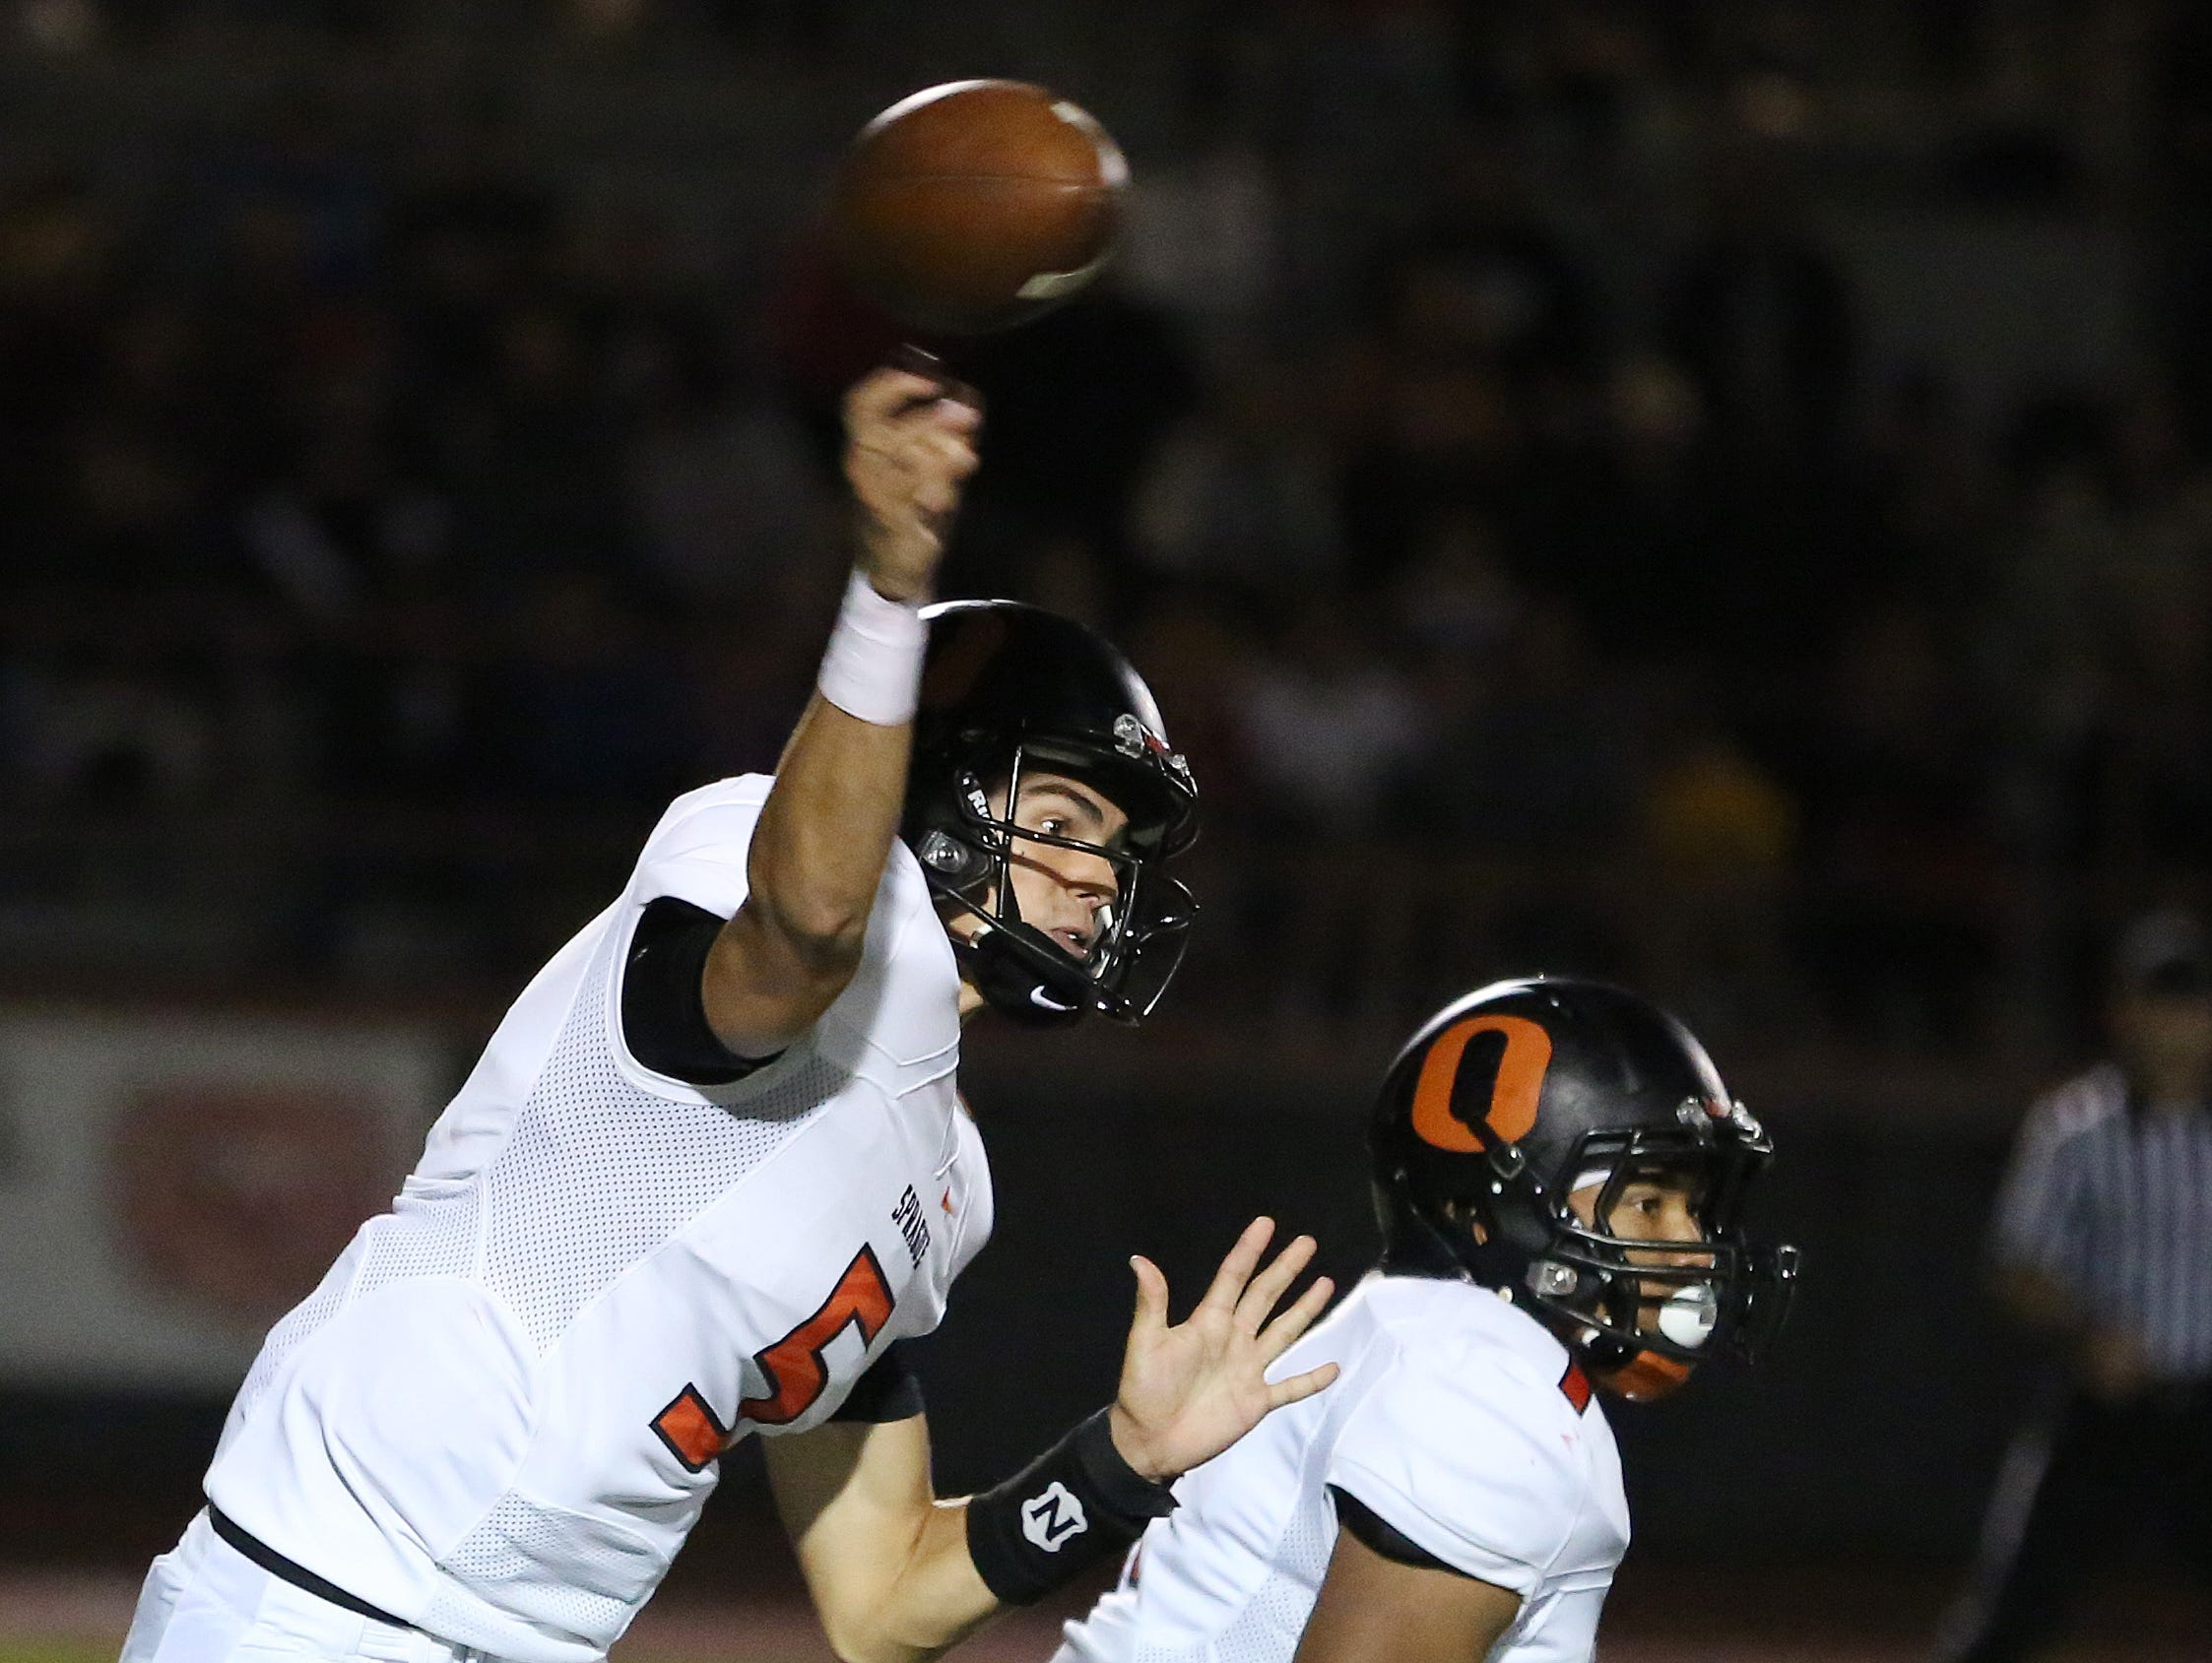 Sprague's Spencer Plant passes the ball as the Olys take on the McMinnville Grizzlies in Greater Valley Conference game on Friday, Sept. 23, 2016, in McMinnville.